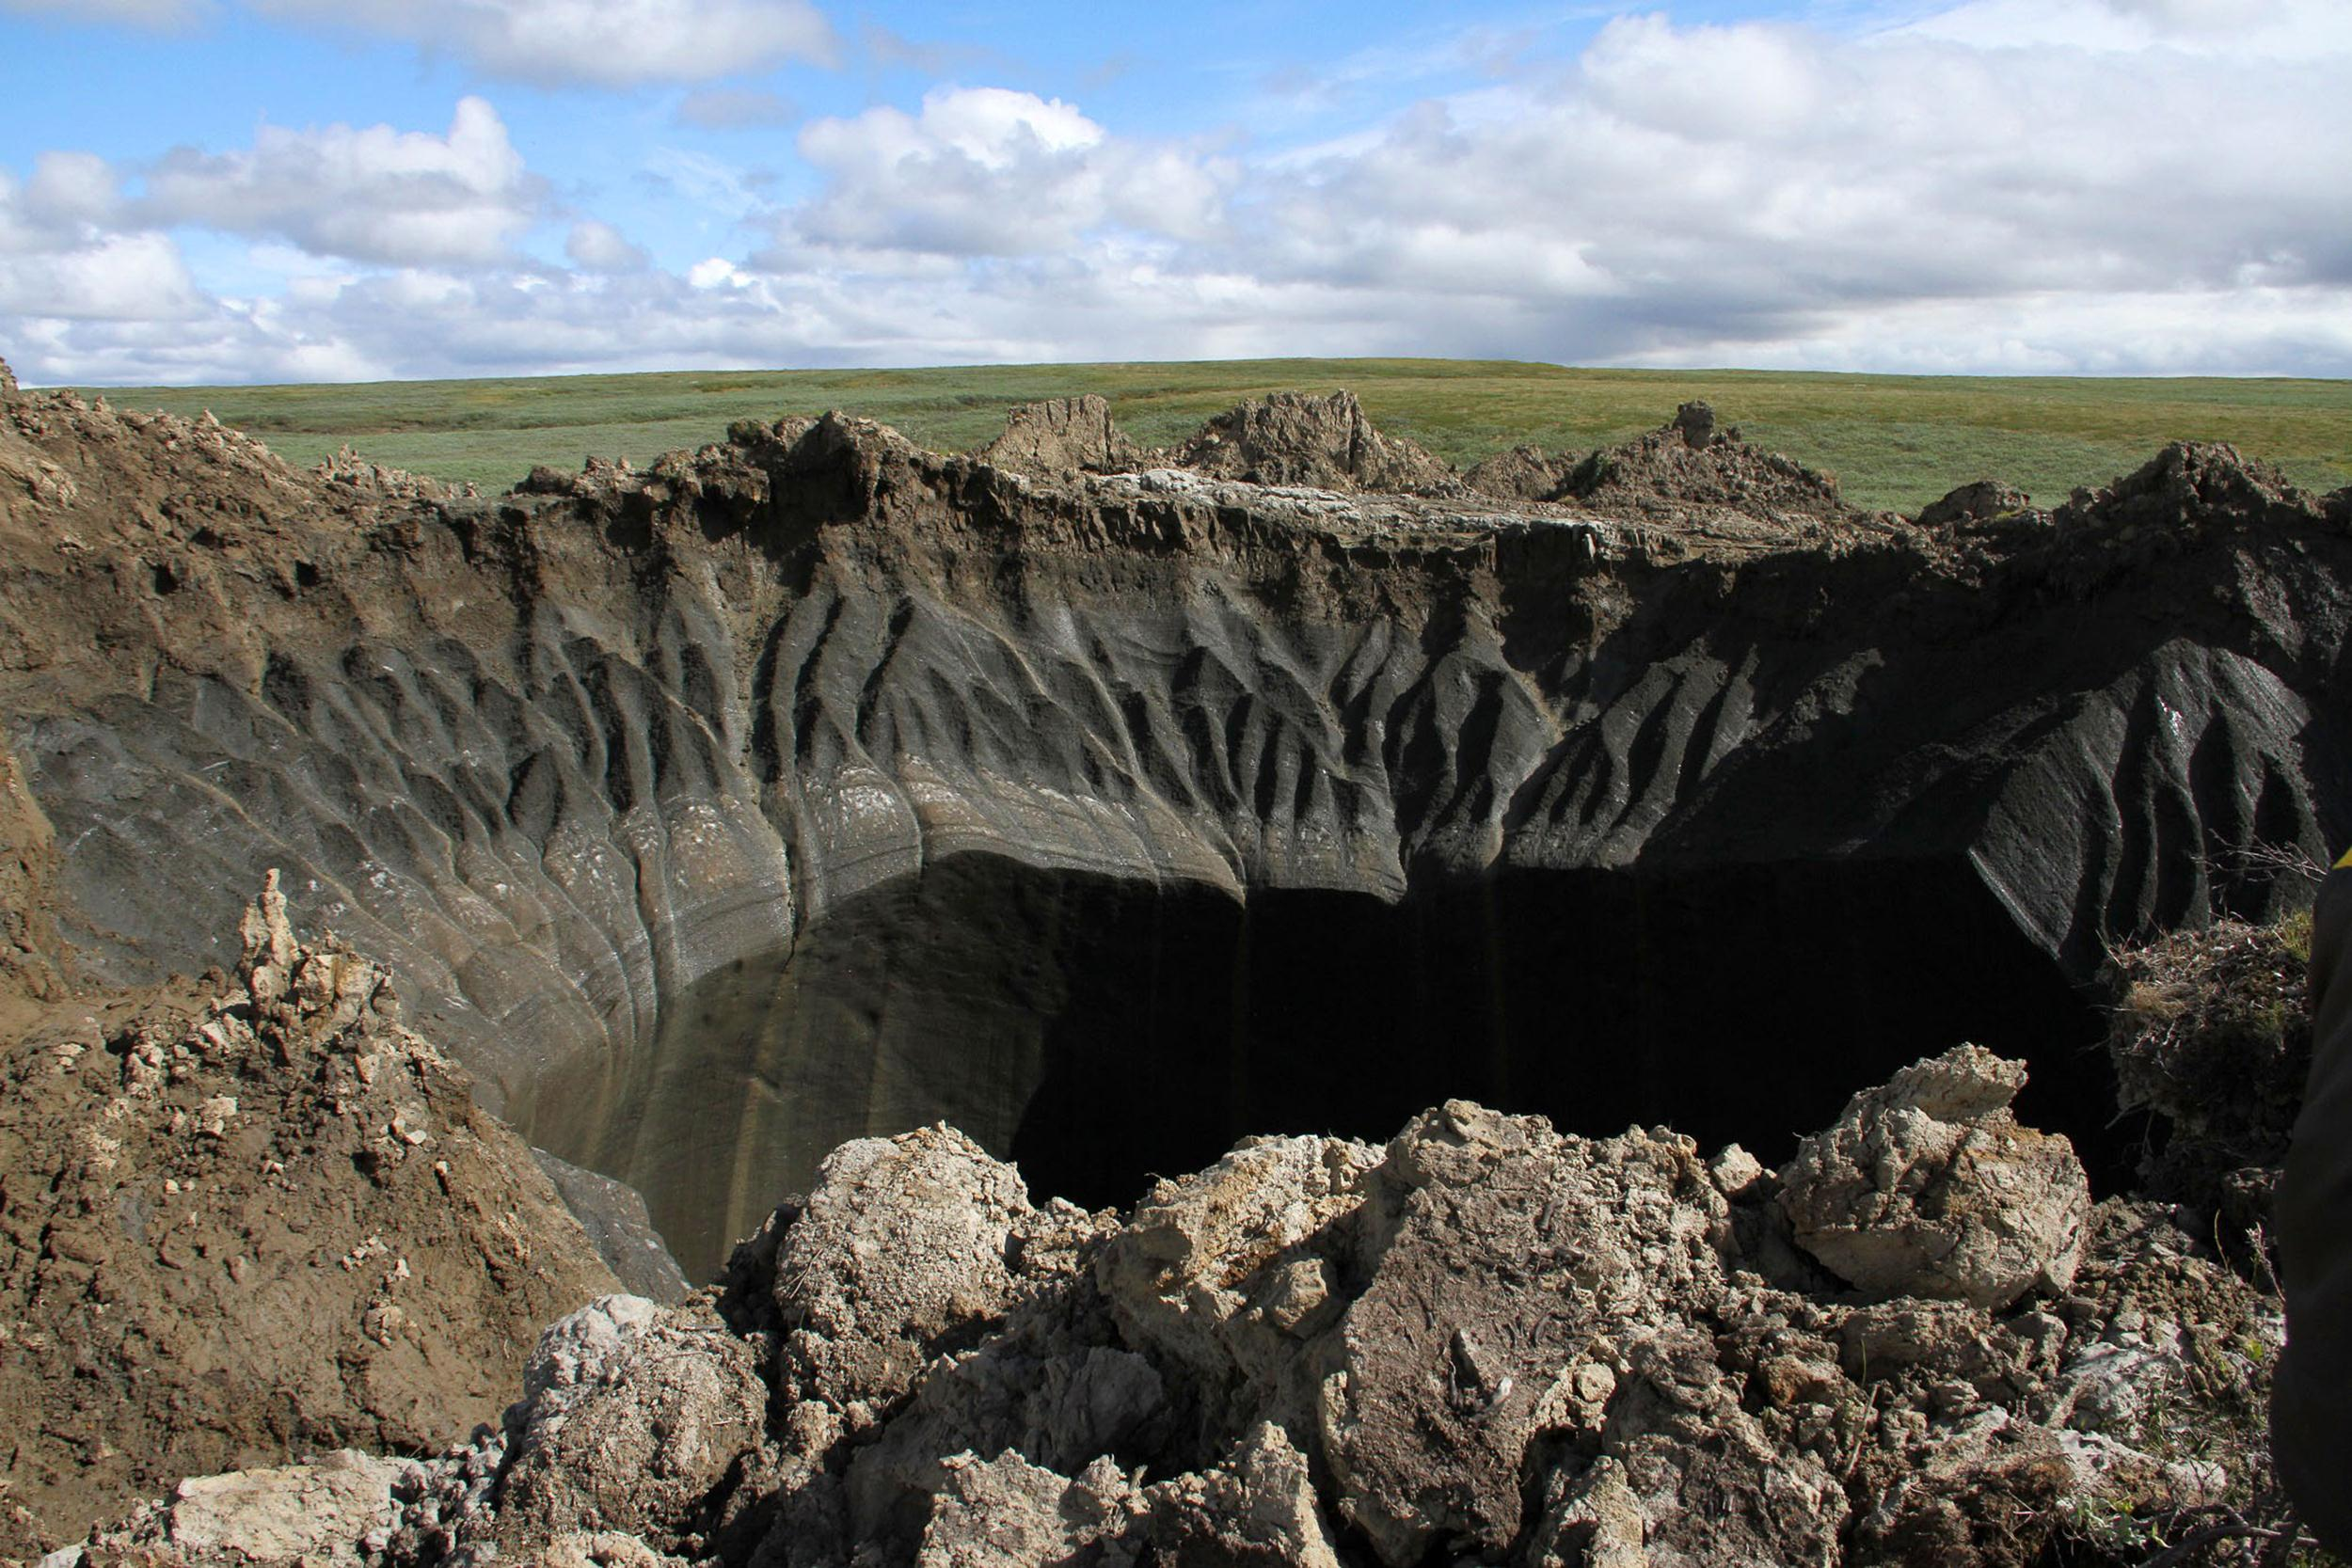 Image: A view of the edge of the crater on the Yamal Peninsula in Siberia.